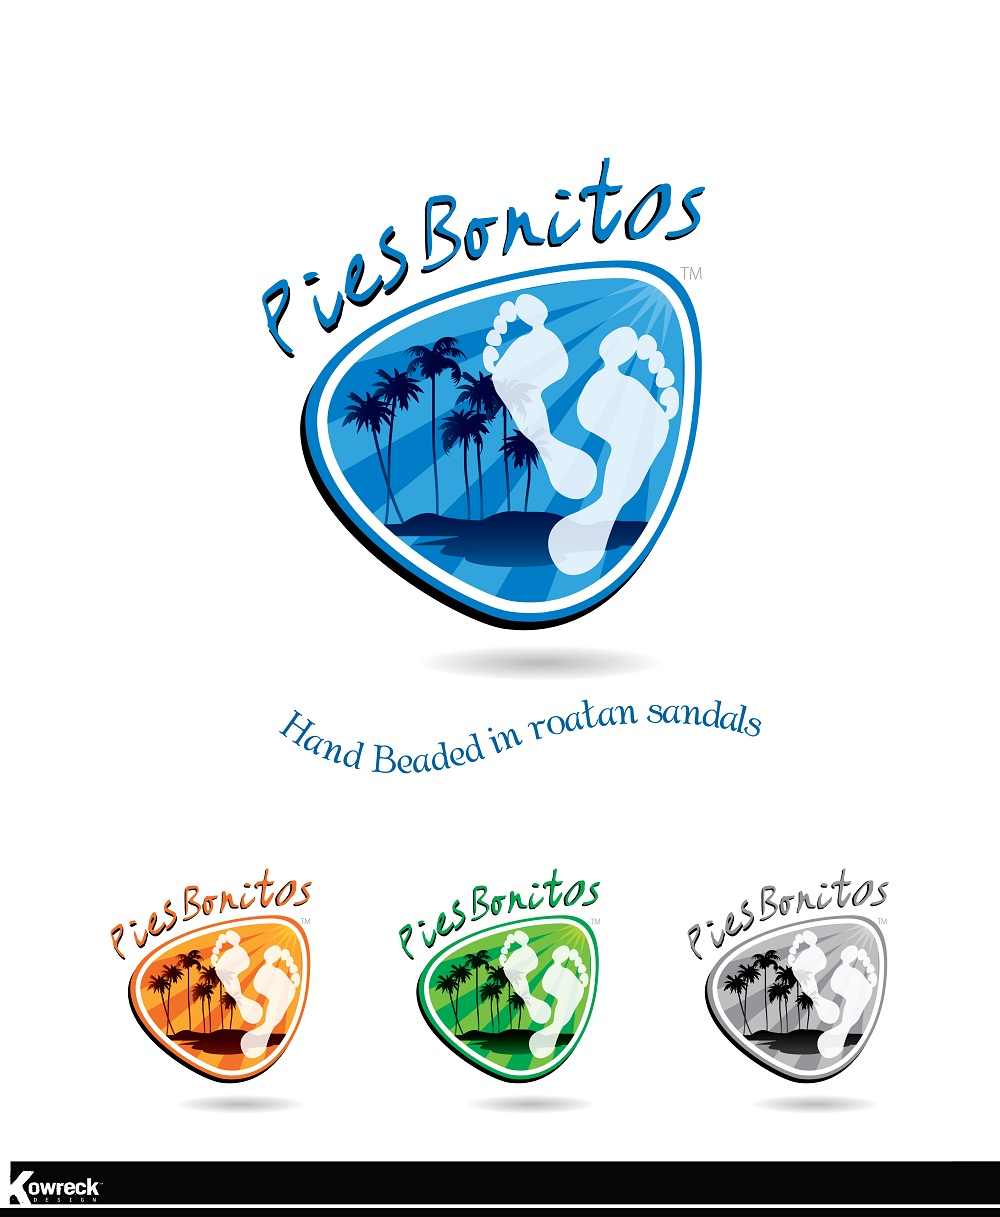 Logo Design by kowreck - Entry No. 22 in the Logo Design Contest Unique Logo Design Wanted for Pies Bonitos.